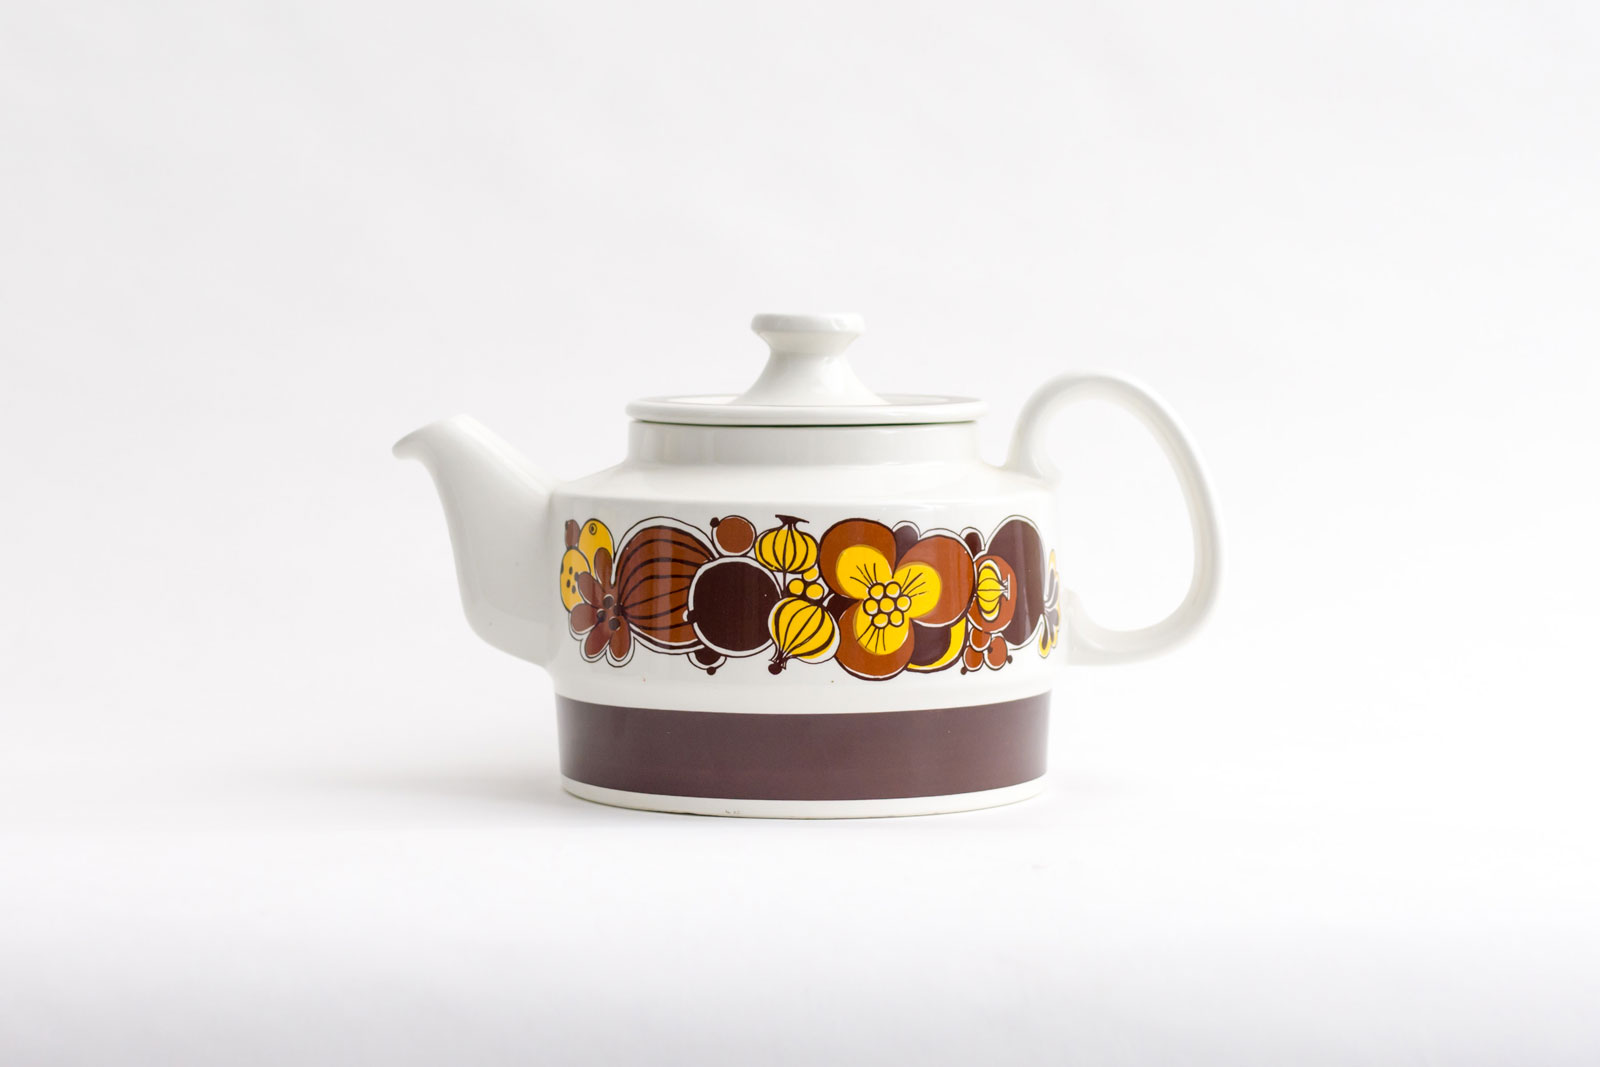 Tea Pot designed by Turi Gramstad Oliver